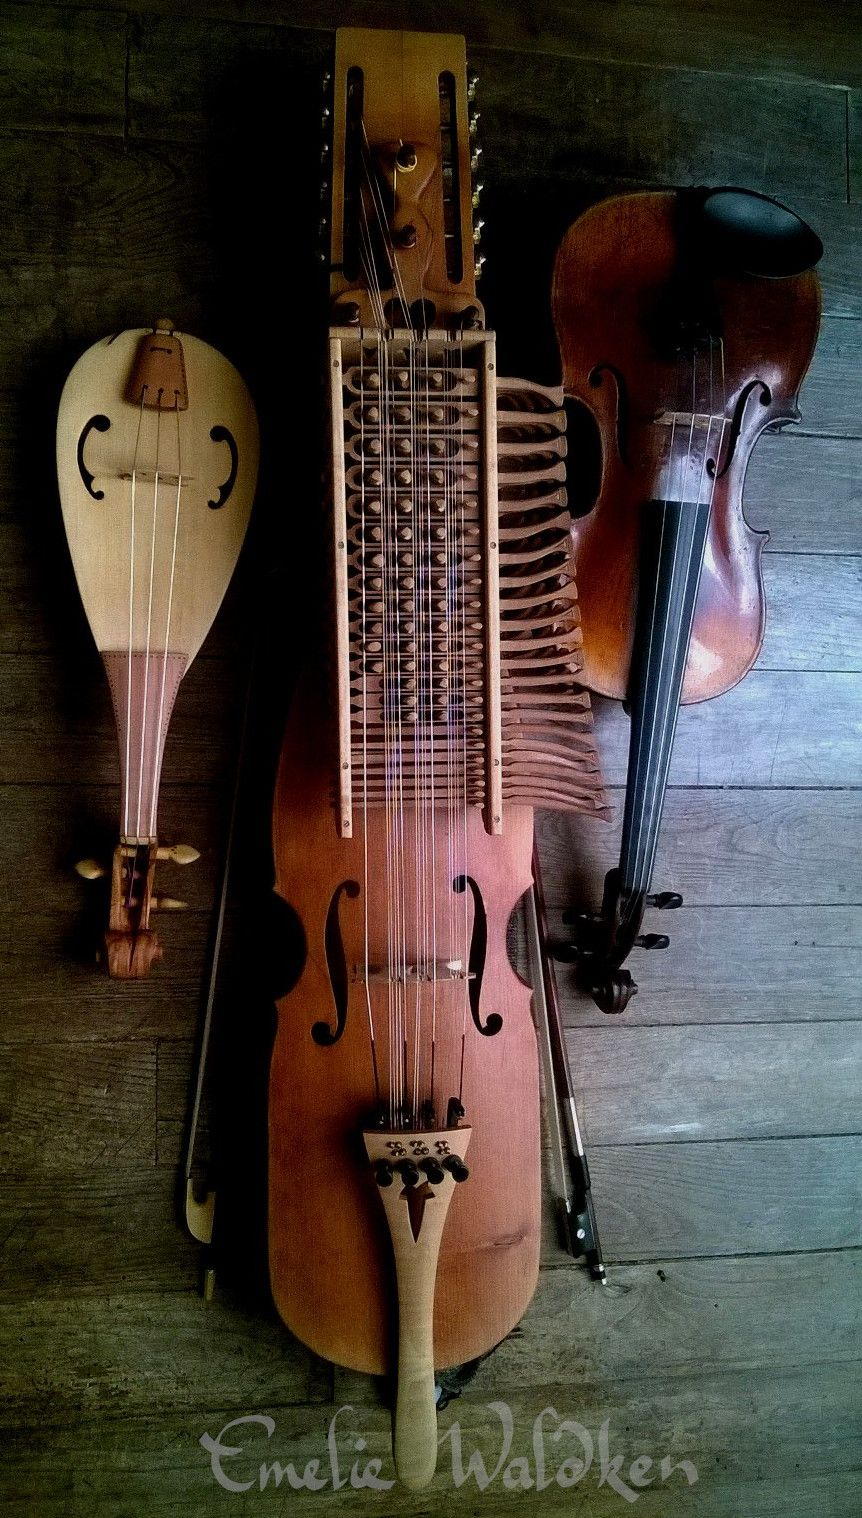 Nyckelharpa Is The Traditional Instrument From Sweden Fiddle Is The Most Common Instrument In Scan Old Musical Instruments Folk Instruments Musical Intruments